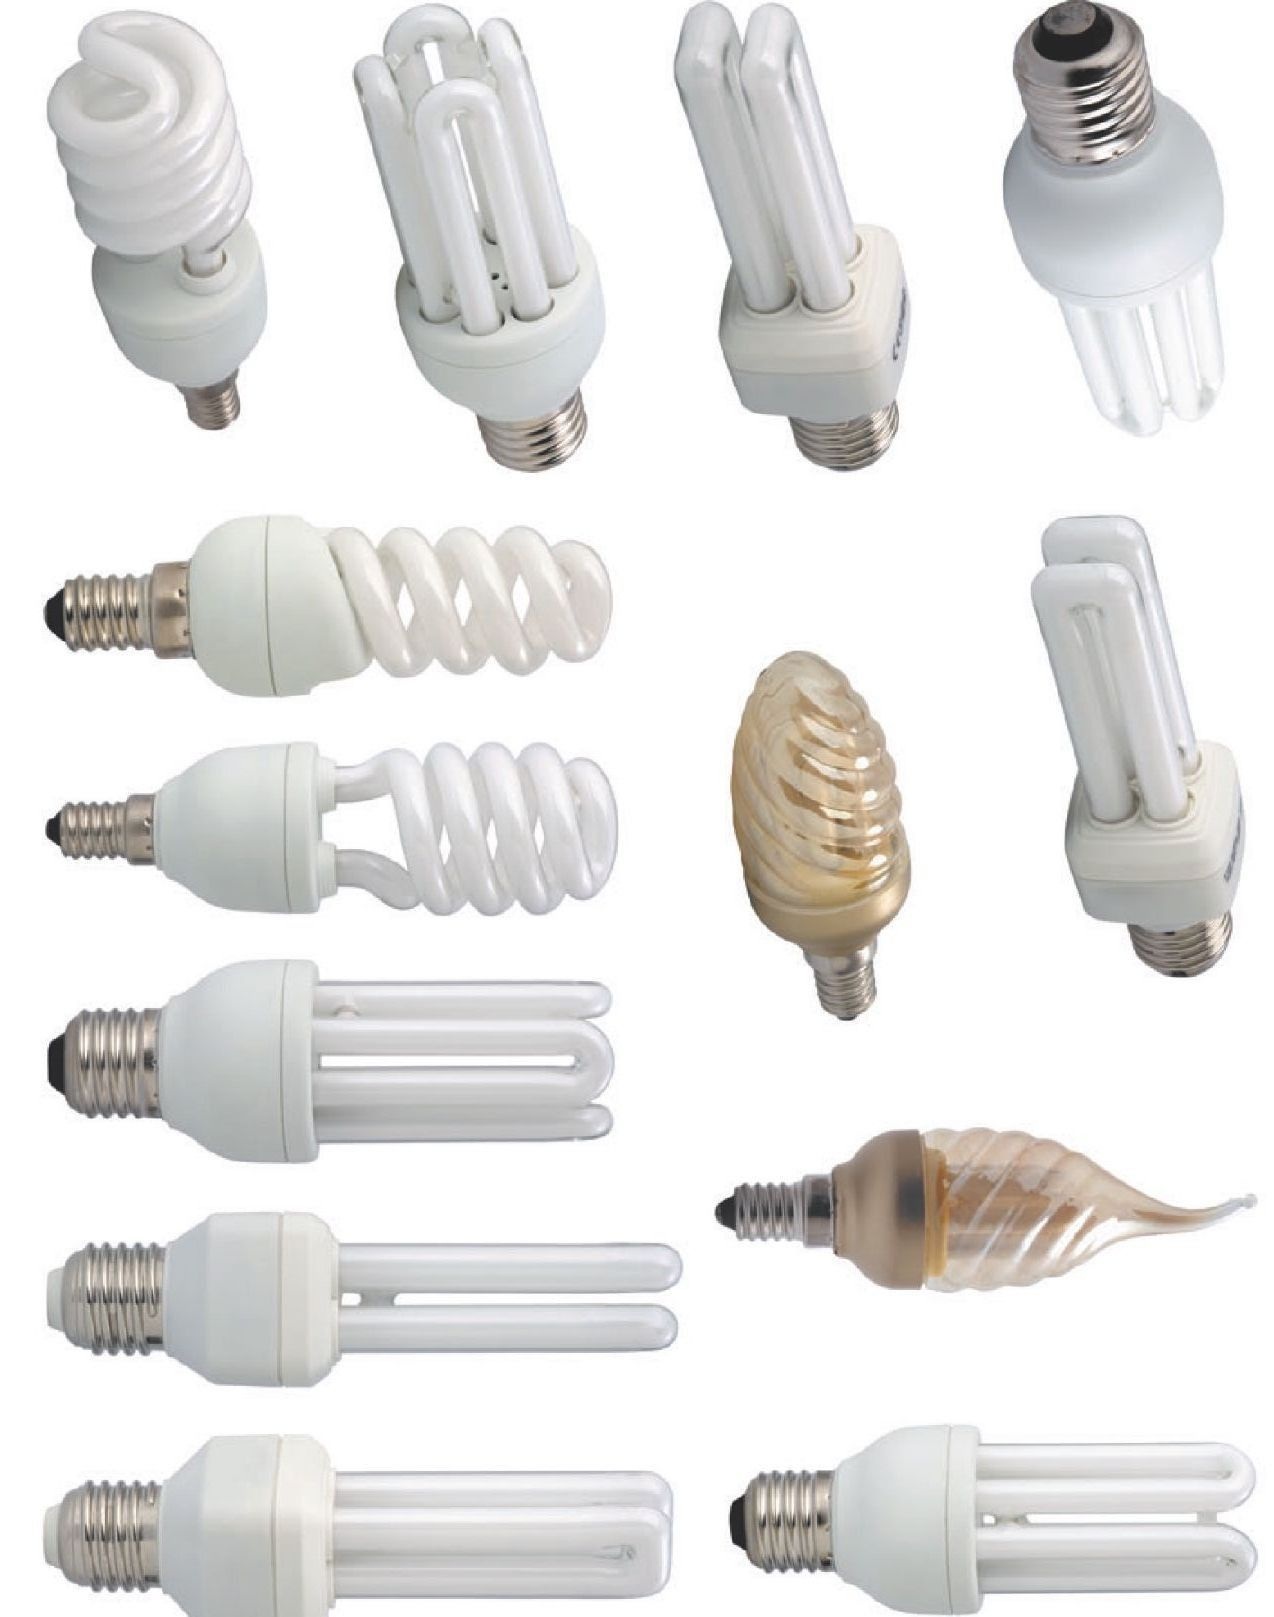 Different Types Of Cfl Light Bulbs | http://johncow.us | Pinterest ... for Fluorescent Lamp Types  183qdu